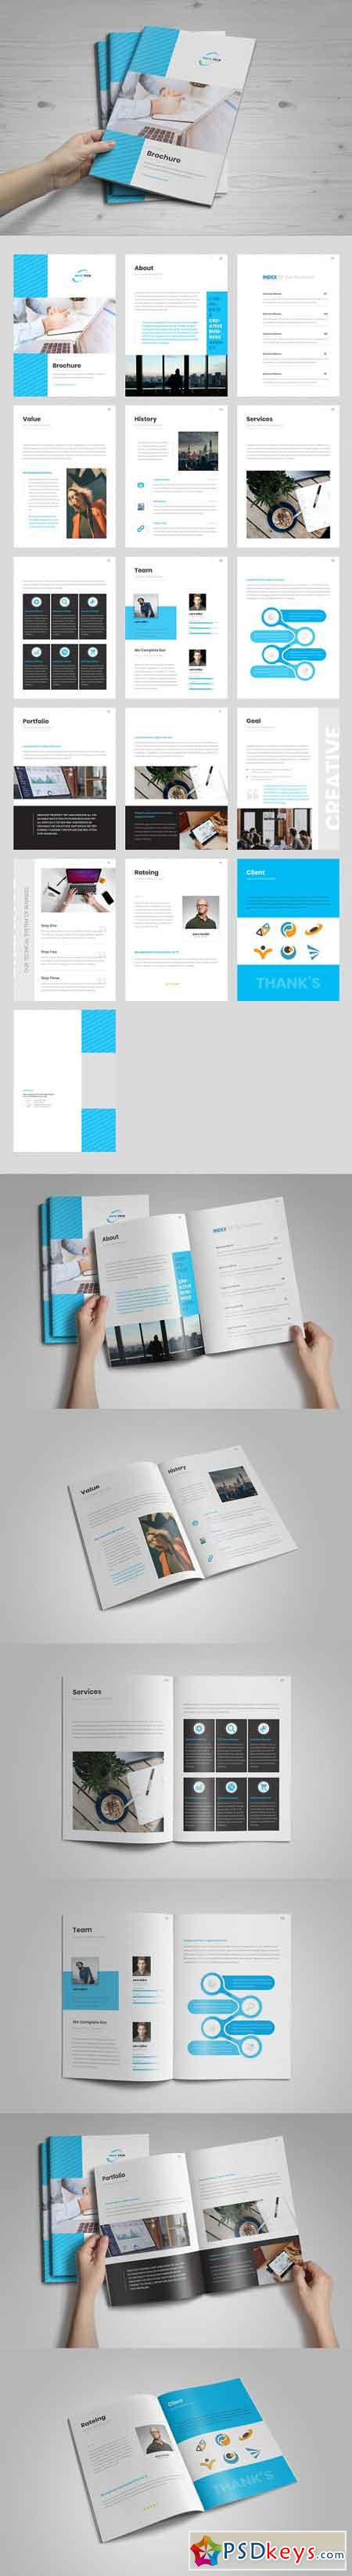 Business Brochure-16 Pages 2730640